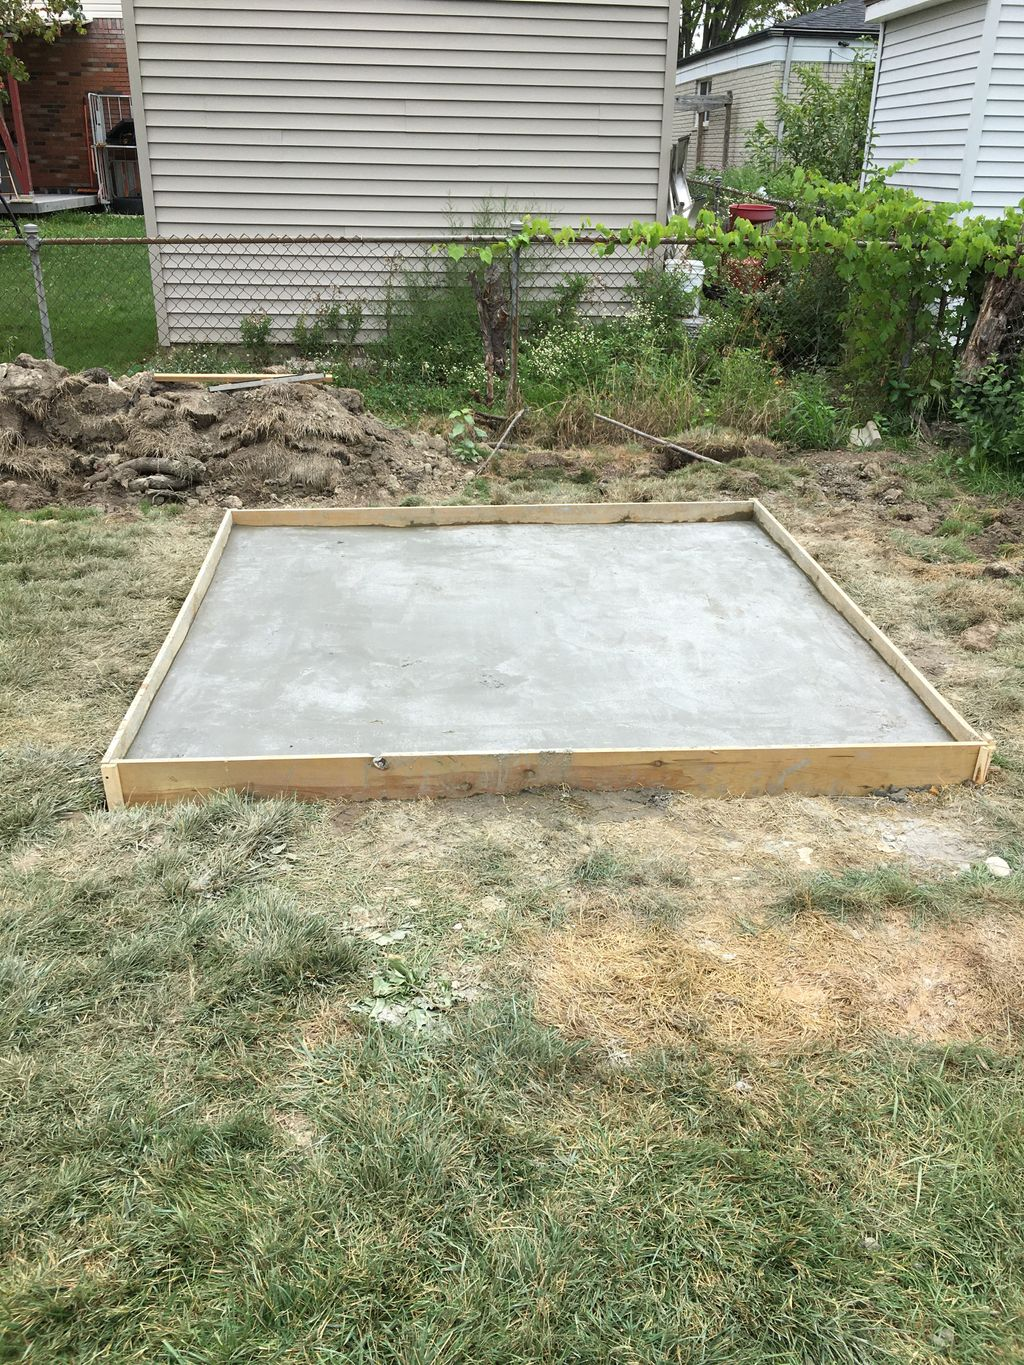 New Shed on a Concrete Pad